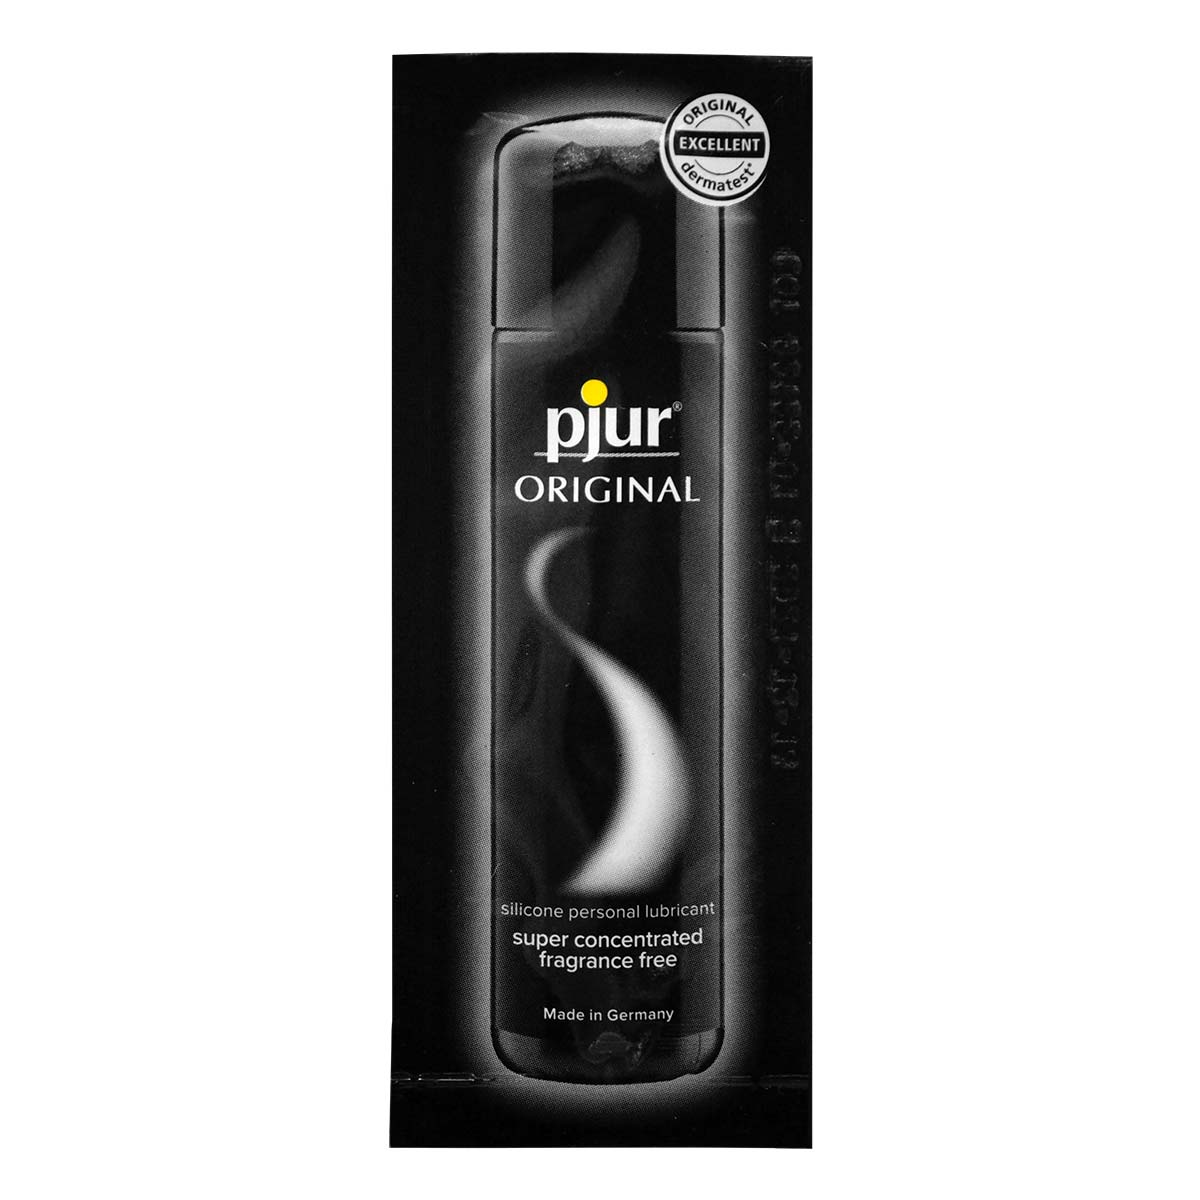 pjur ORIGINAL 1.5ml Silicone-based Lubricant